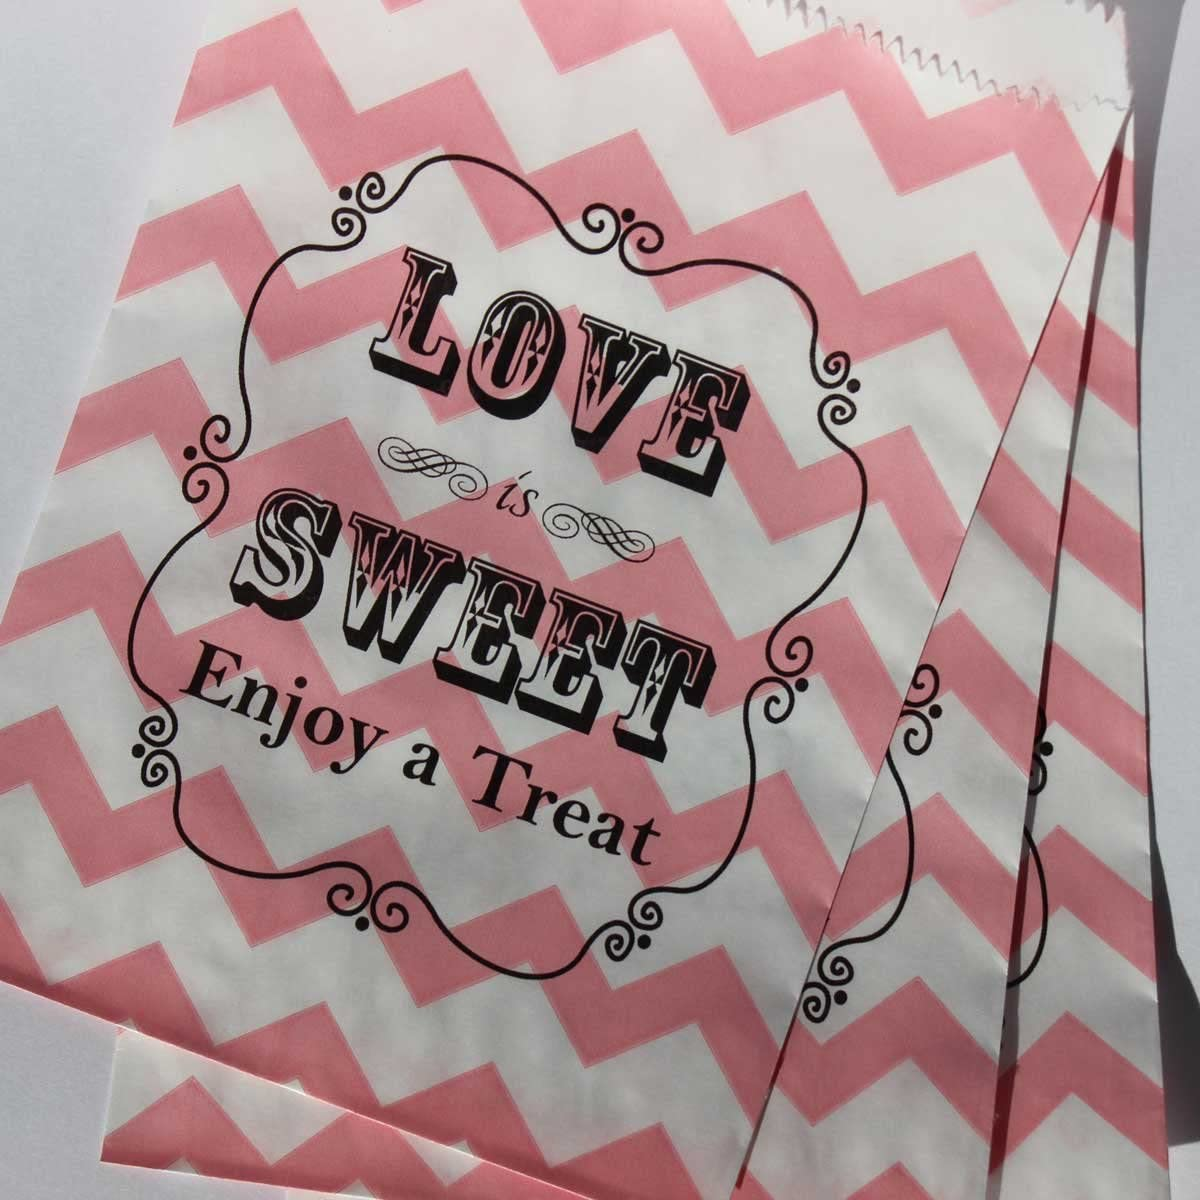 Bakers Bling Wedding Party Favor Bags with Stickers, Pink and White Chevron Stripe Love is Sweet Enjoy a Treat Candy Bags, 5.5 x 7.5, Set of 48 Bags and 48 Stickers